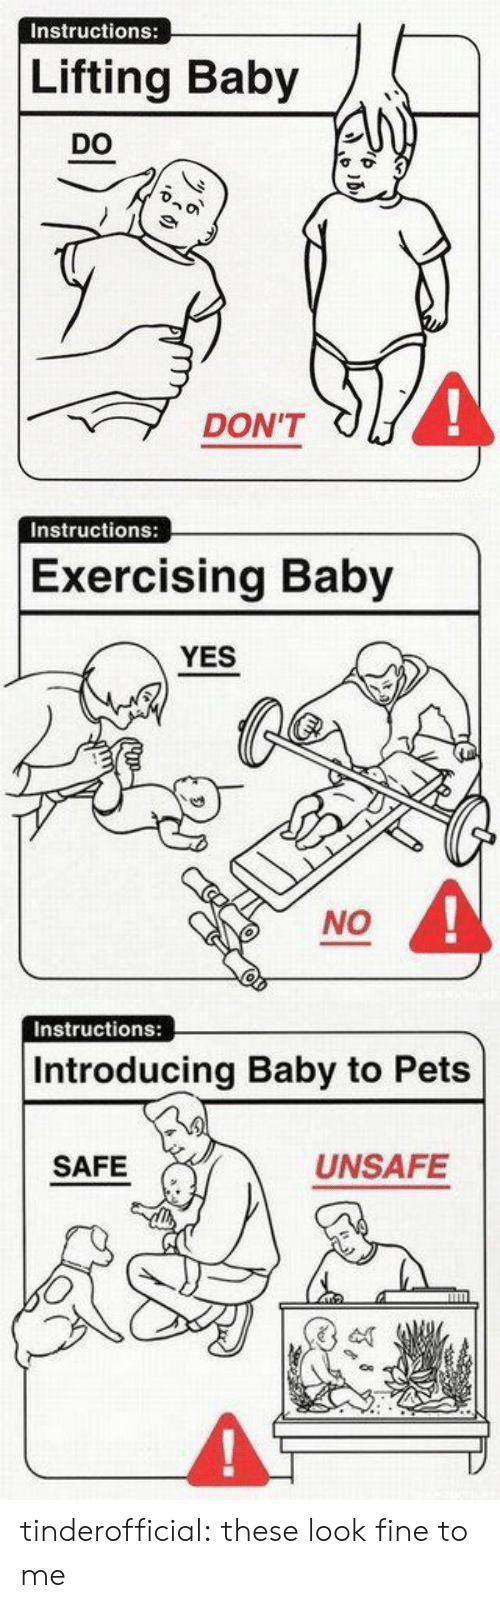 exercising: Instructions:  Lifting Baby  DO  4  DON'T   Instructions:  Exercising Baby  YES  NO   Instructions:  Introducing Baby to Pets  SAFE  UNSAFE tinderofficial: these look fine to me